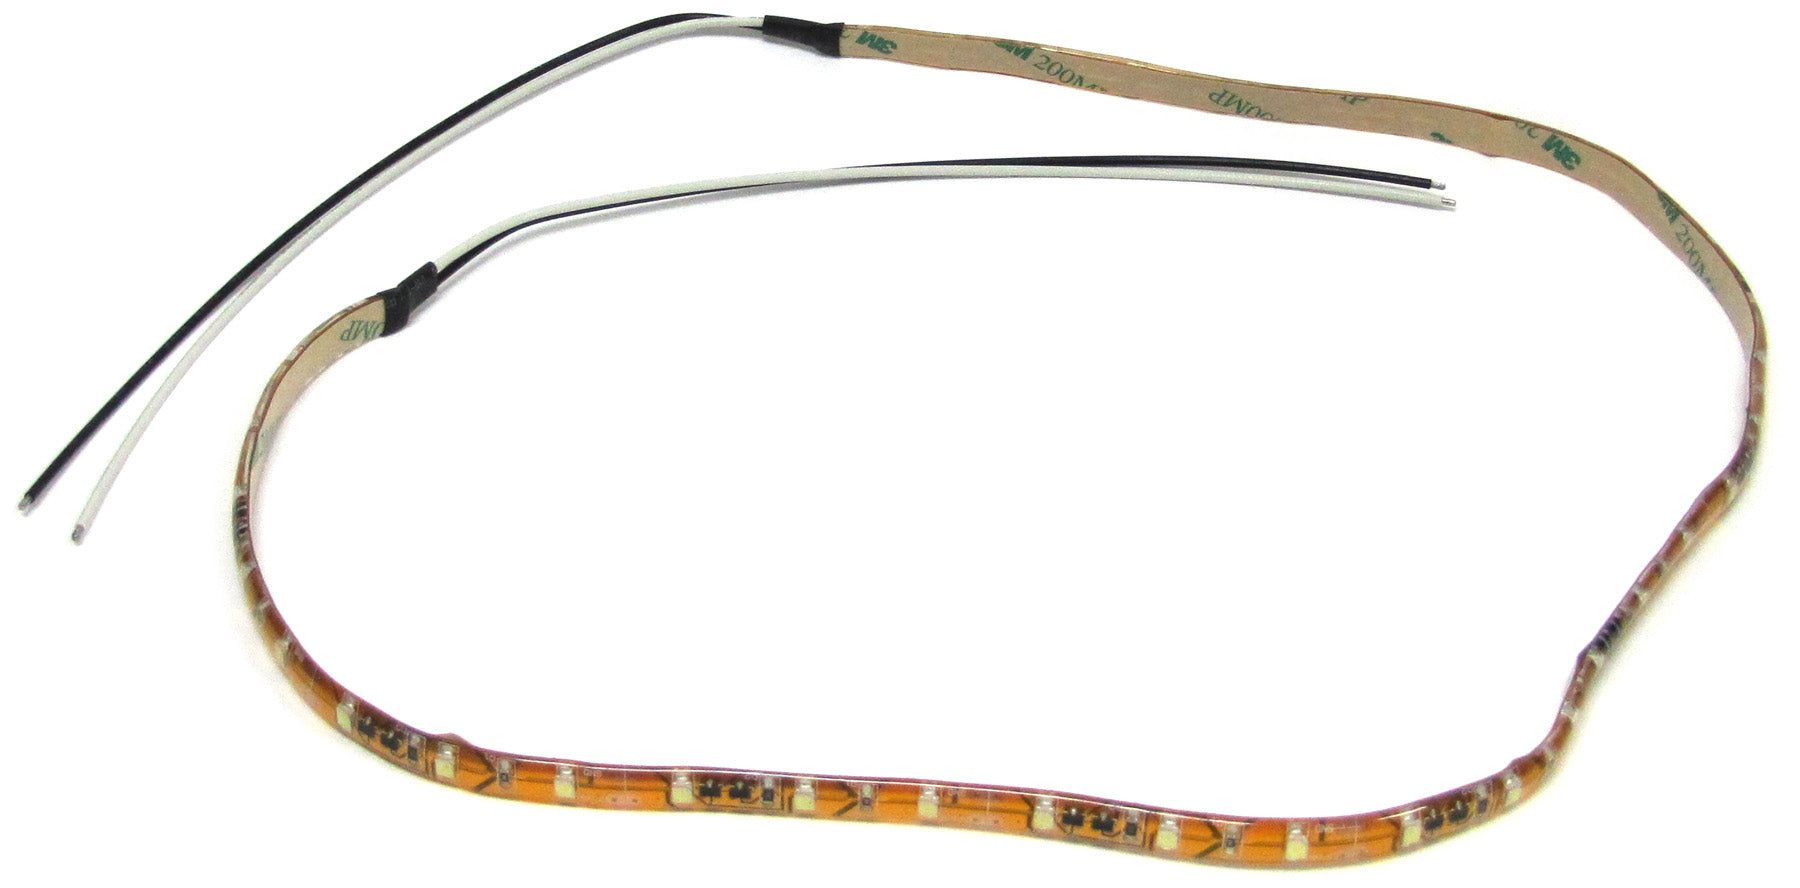 "LED WHT STRIP LGT 24"" LD WIRES ONE END"